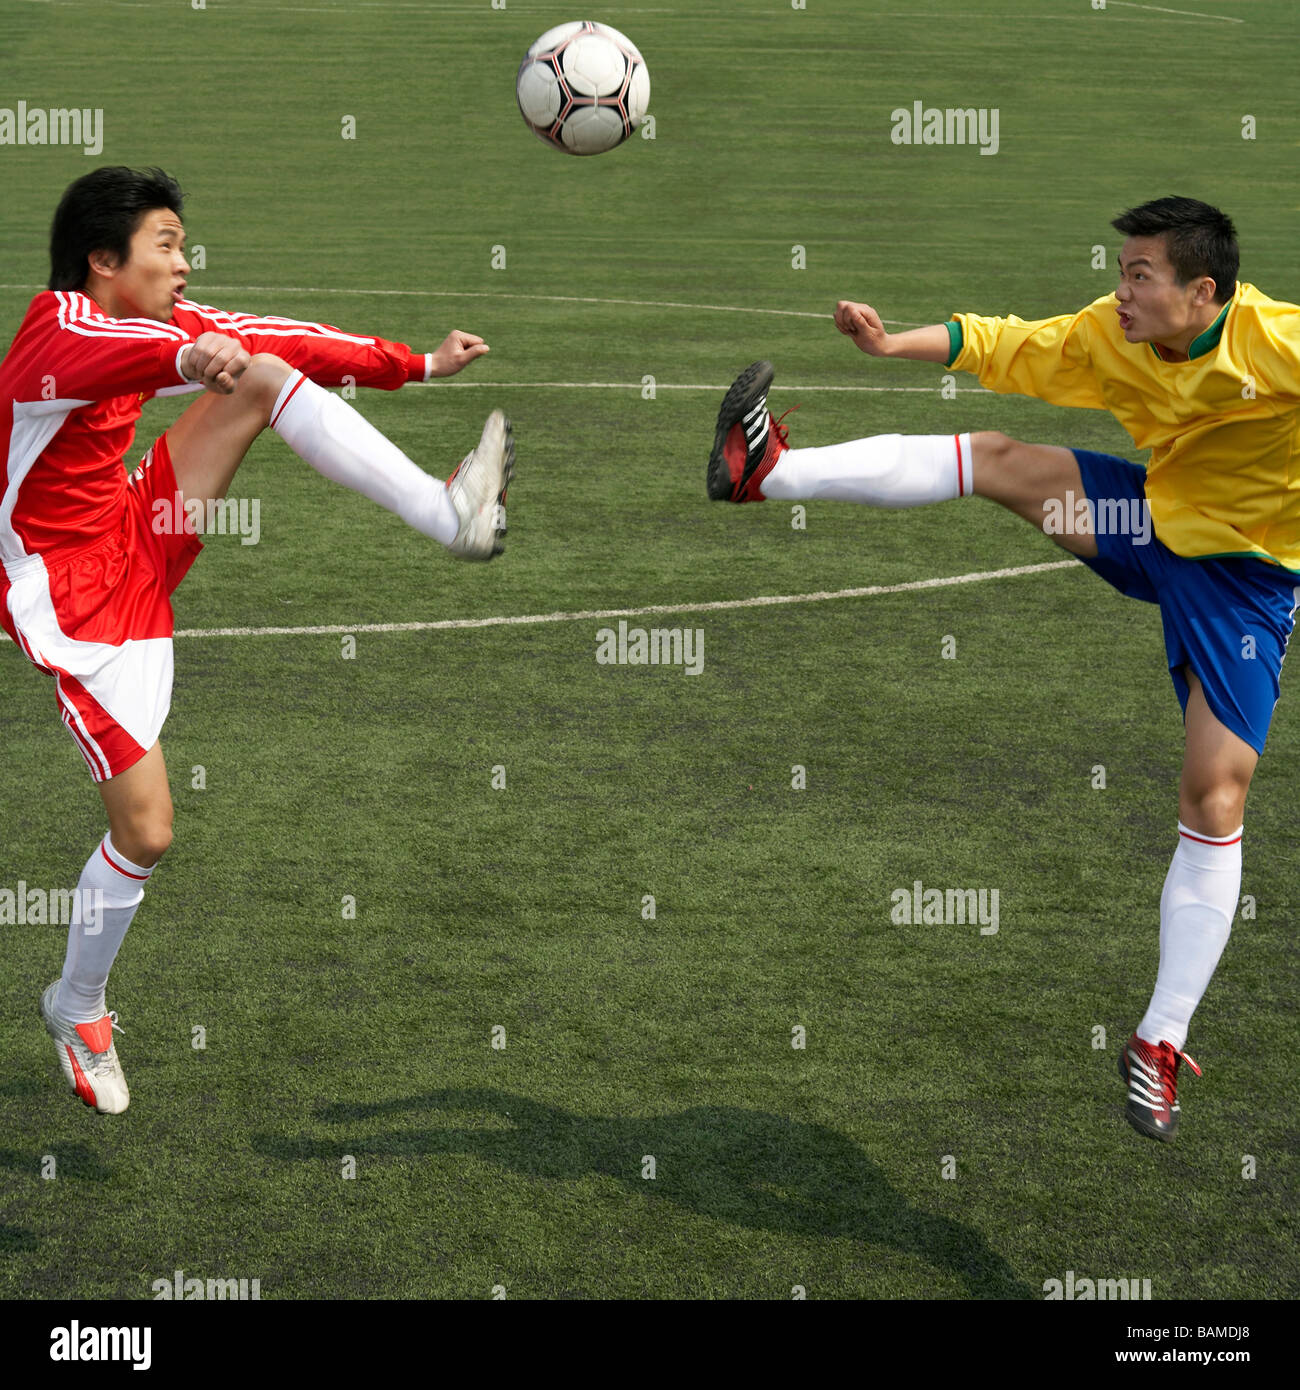 Two Soccer Players Jumping For The Ball - Stock Image